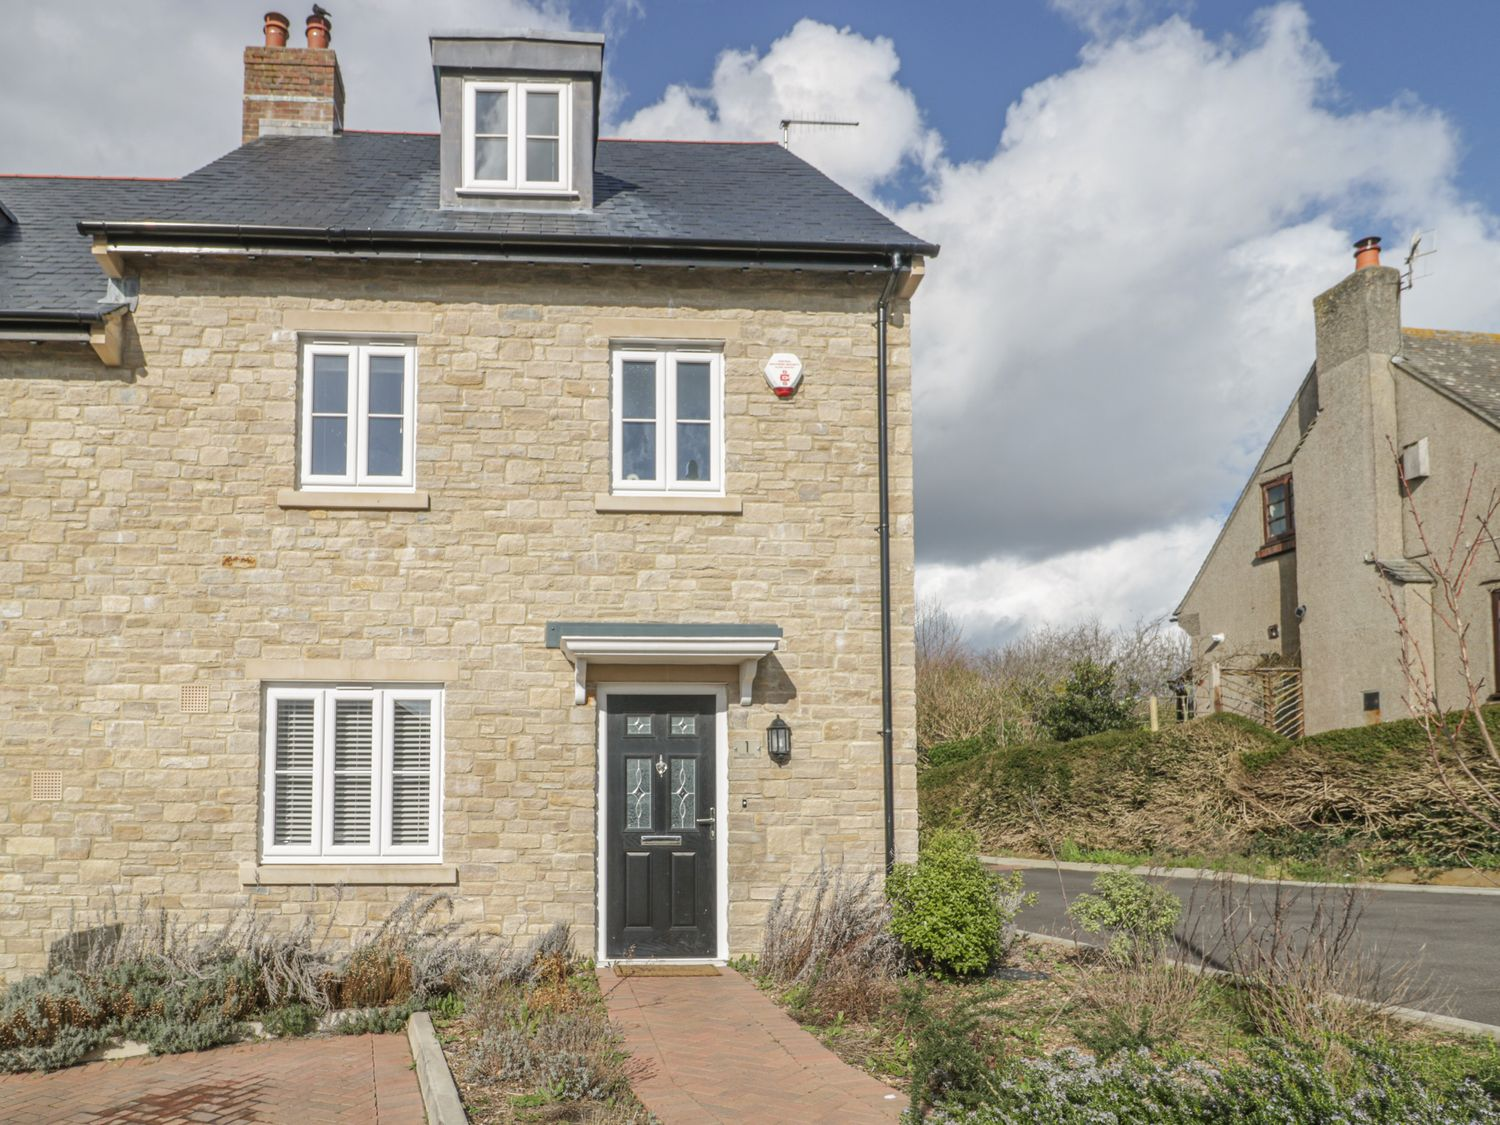 1 Sutton Gate - Dorset - 1042446 - photo 1